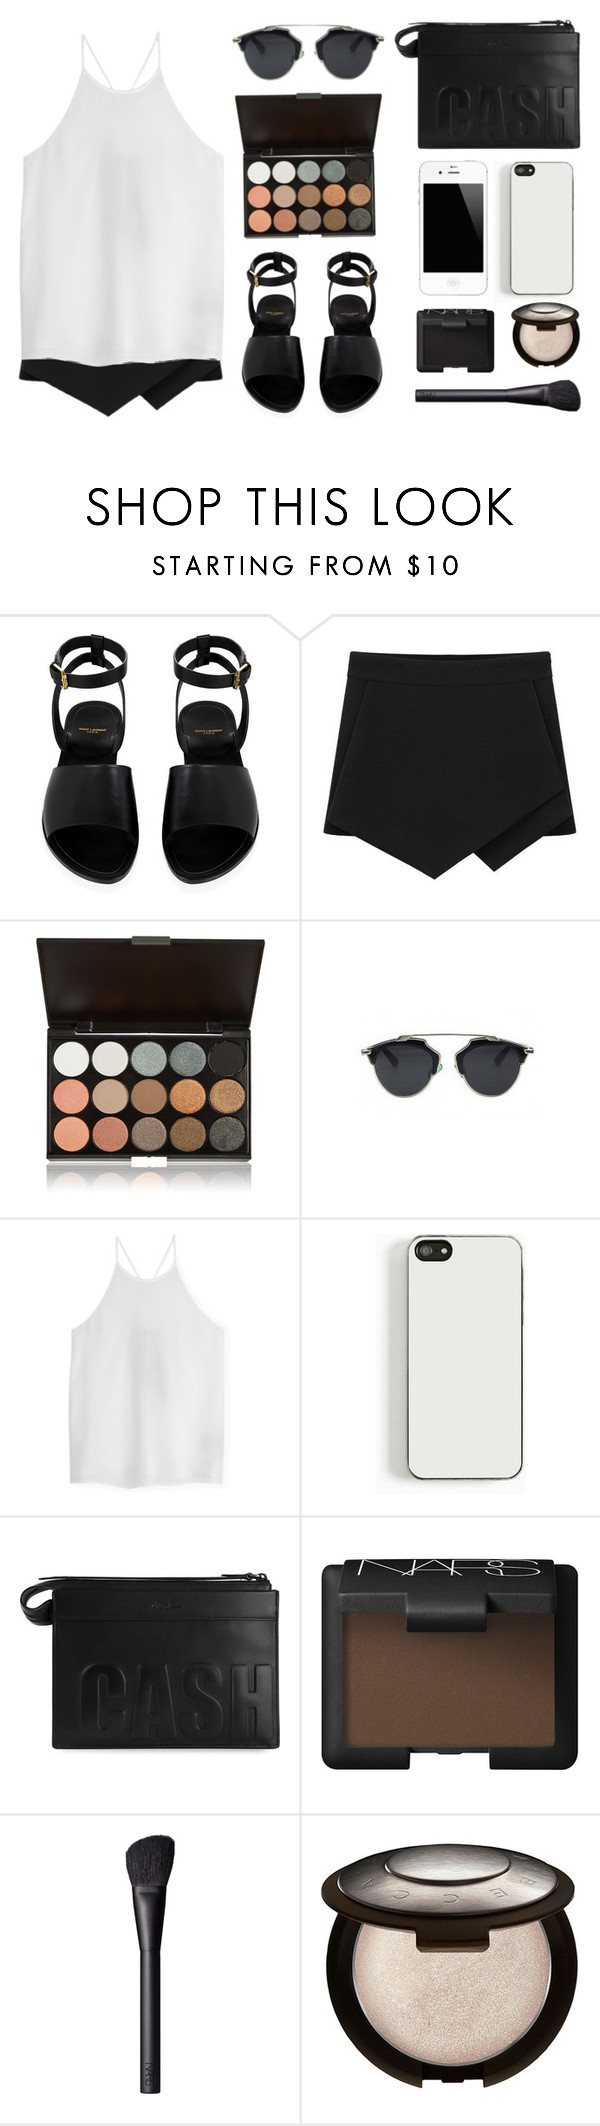 """Simple"" by baludna ❤ liked on Polyvore featuring Yves Saint Laurent, TIBI, Zero Gravity, 3.1 Phillip Lim, NARS Cosmetics and Becca"